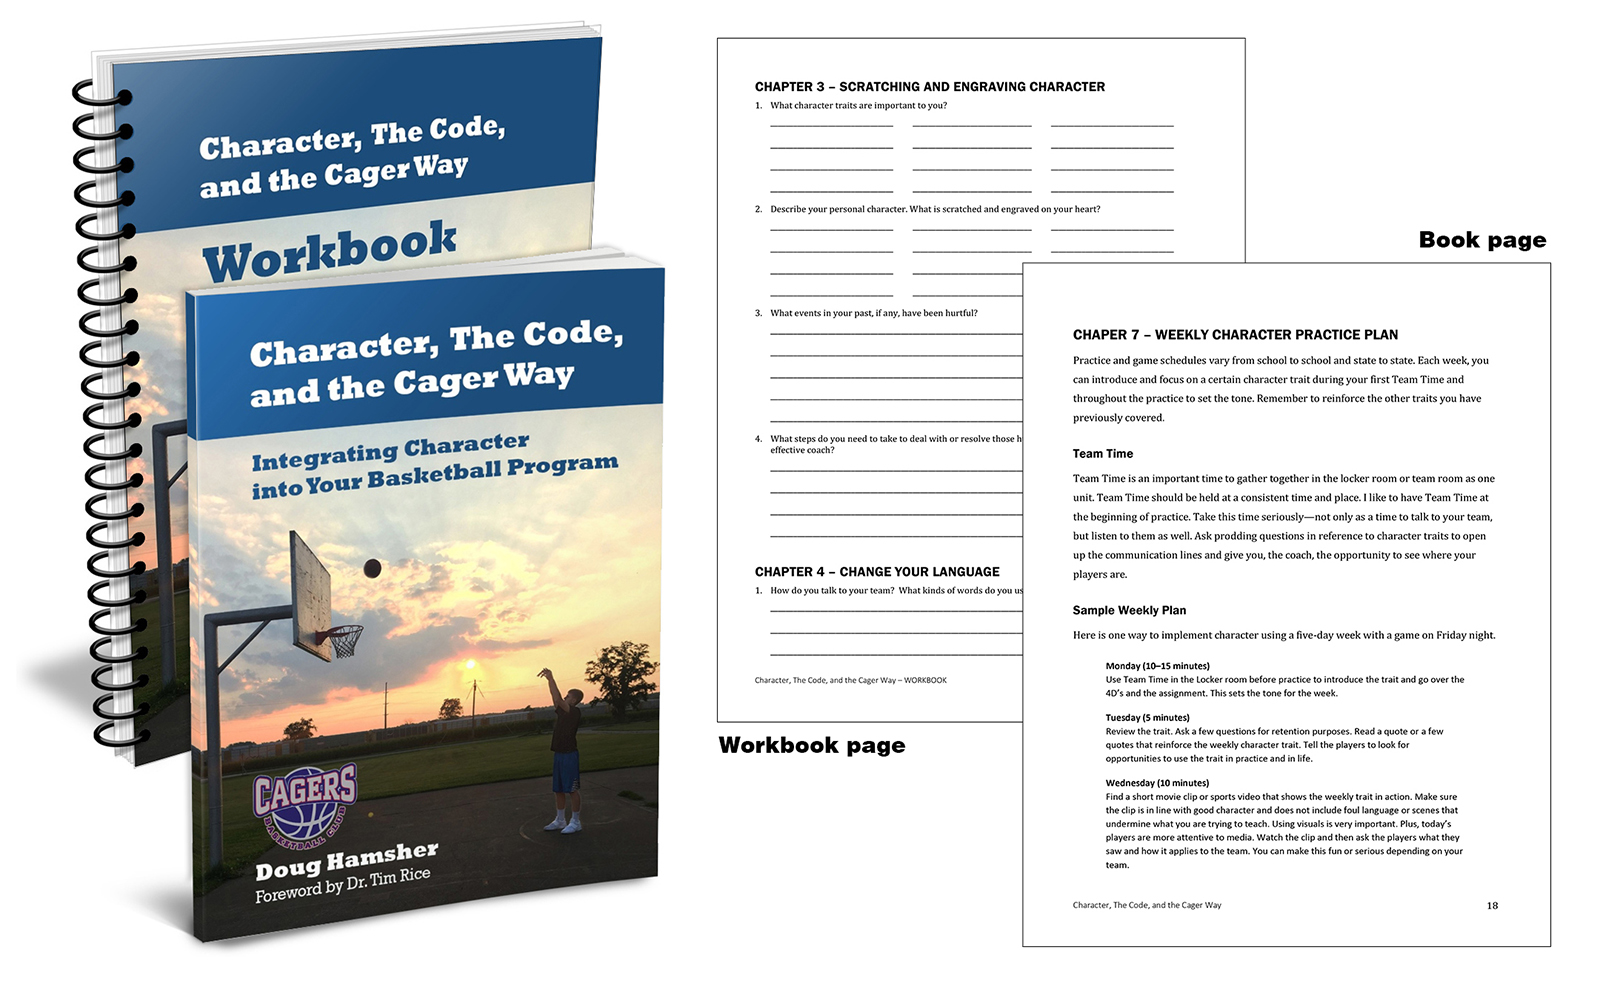 Editing and Layout – Character, The Code, and the Cager Way